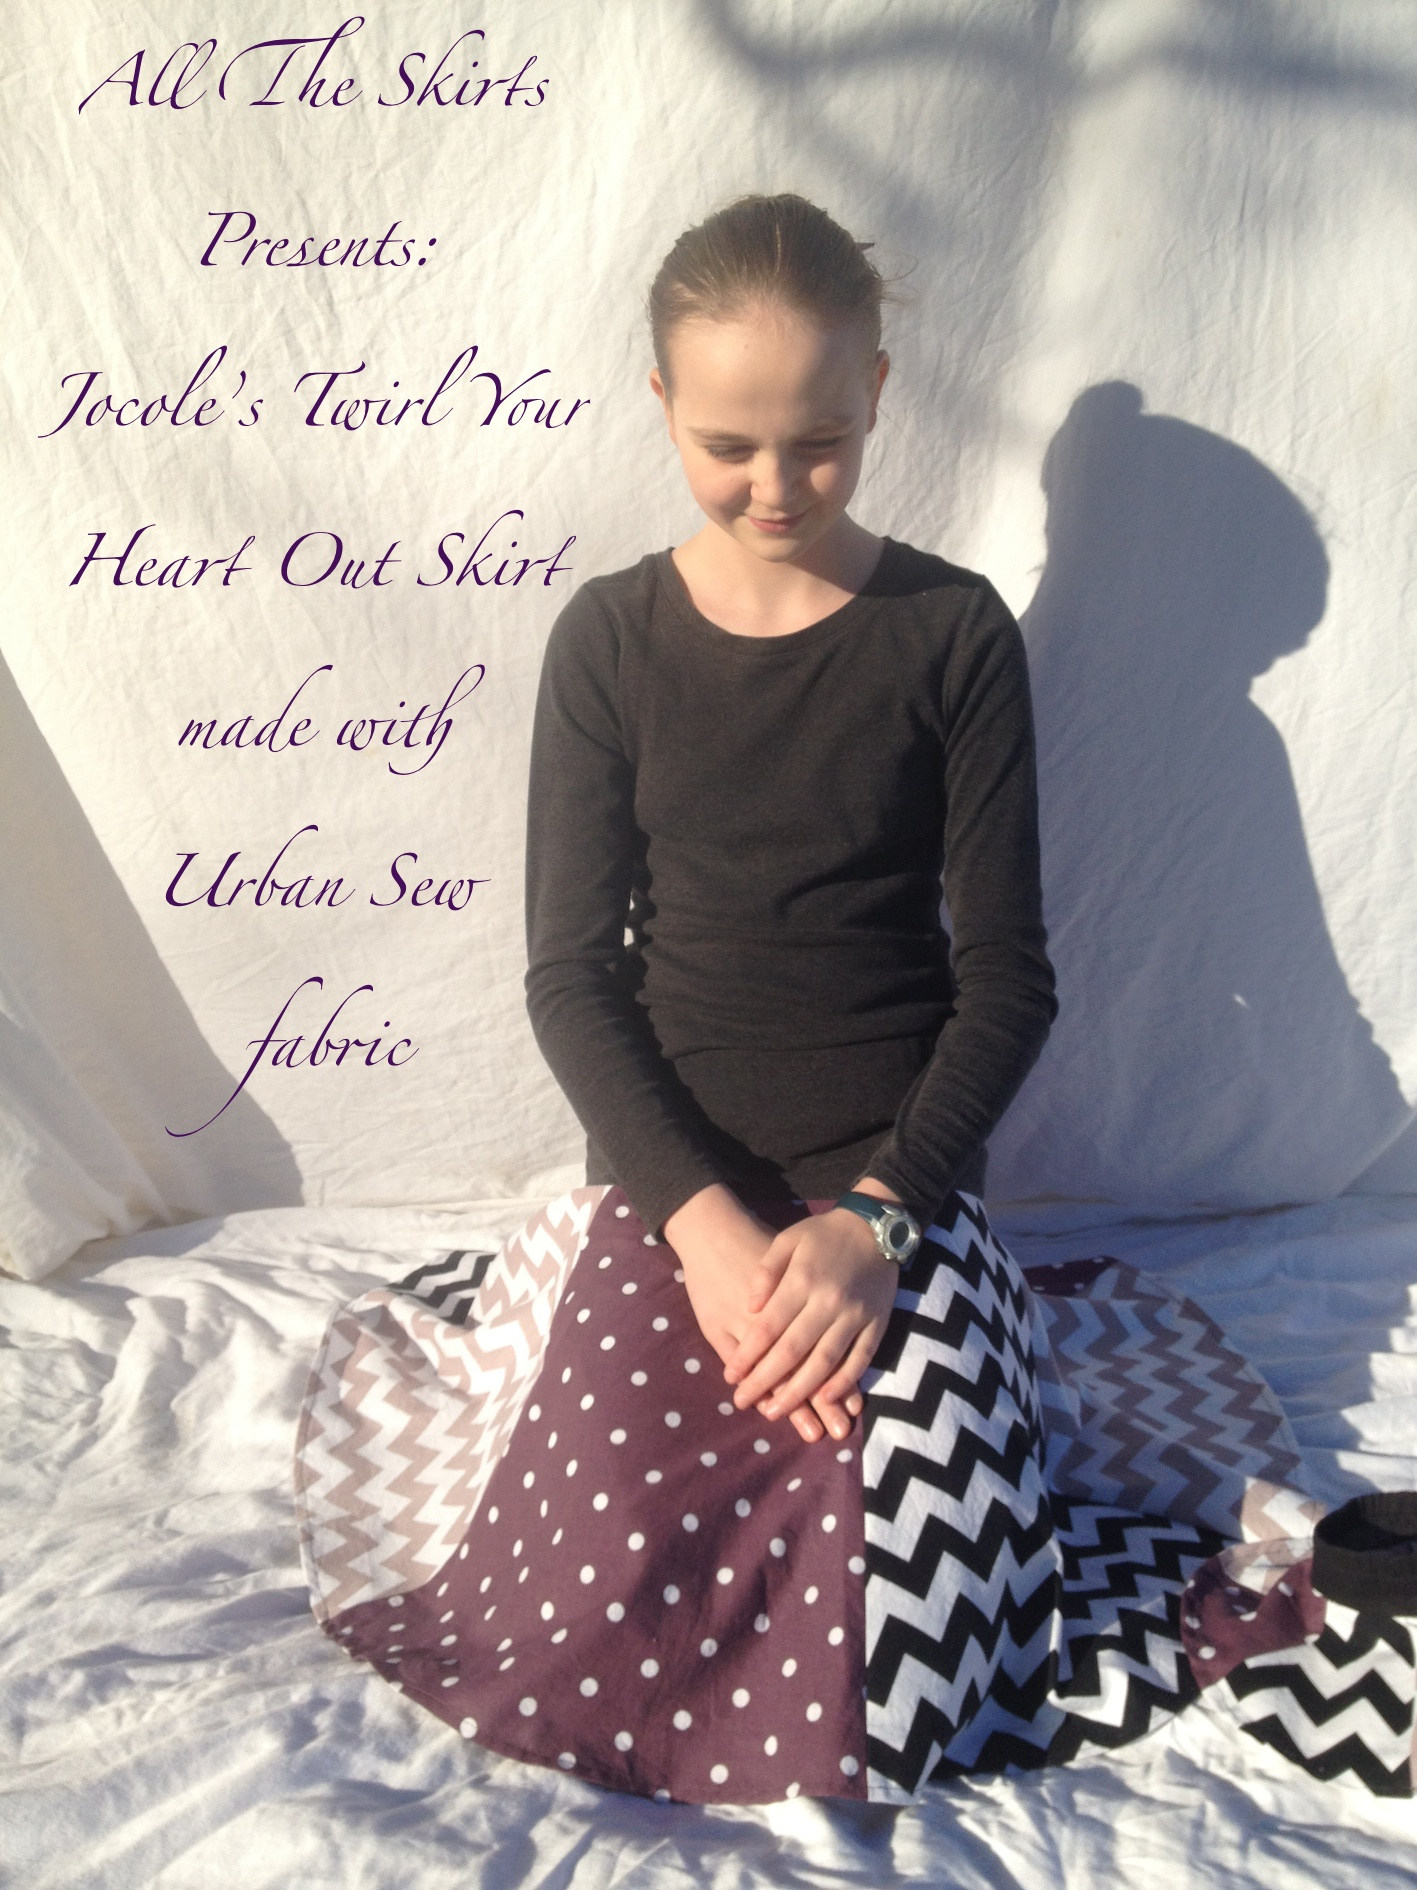 Drop And Twirl Jocole Skirt Pattern sewn with fabric from Urban Sew by Skirt Fixation